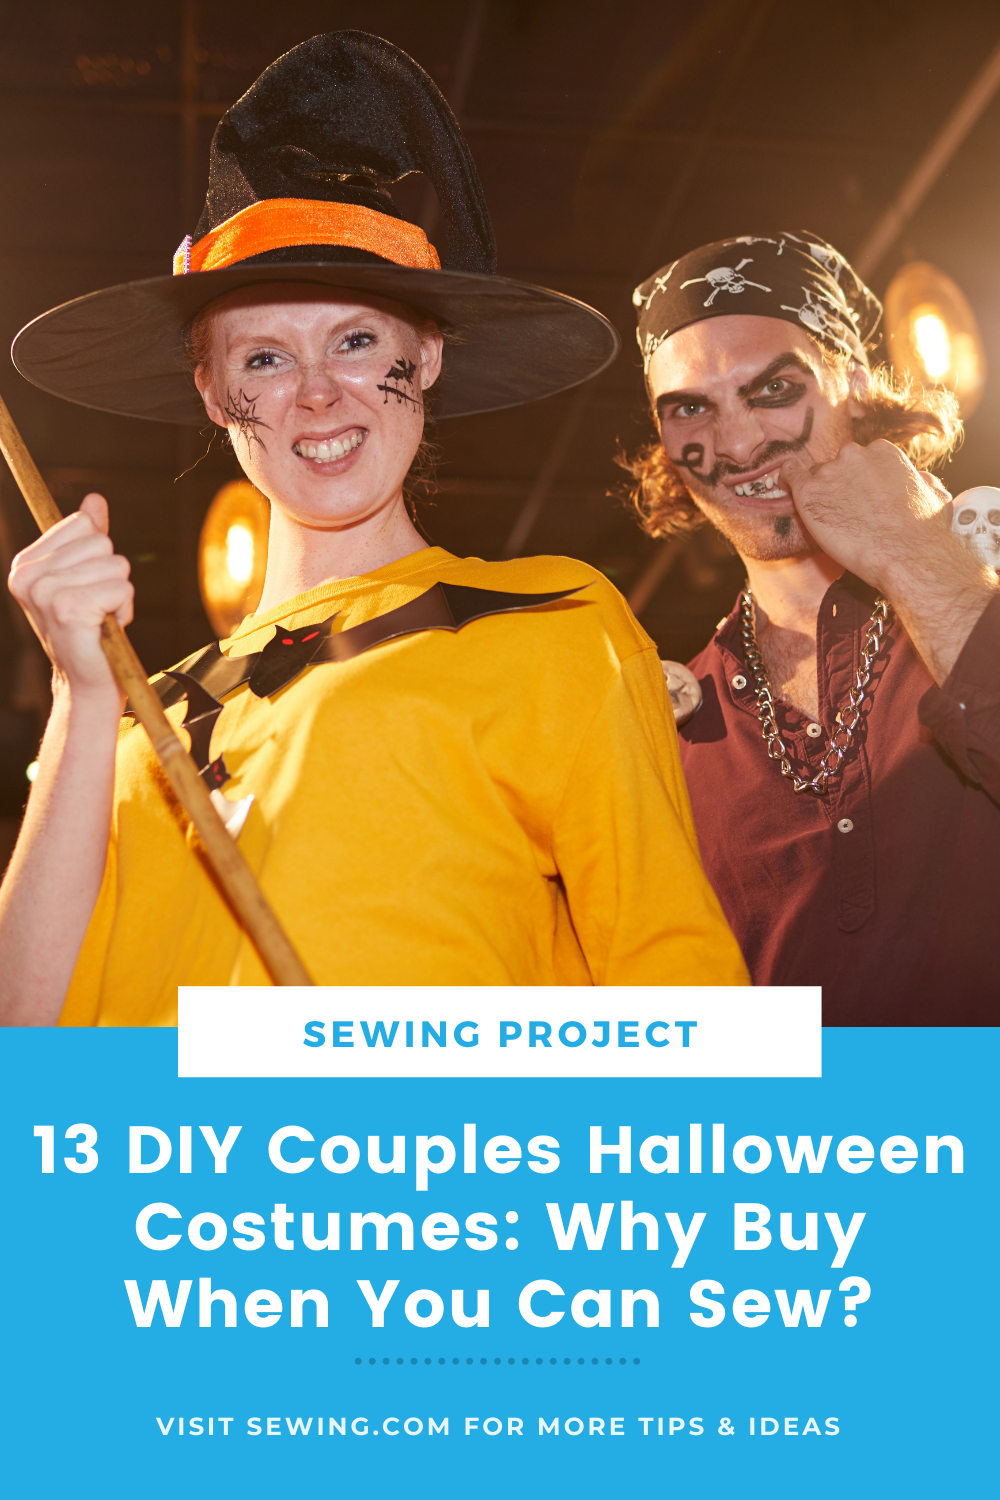 placard | 13 DIY Couples Halloween Costumes Why Buy When You Can Sew